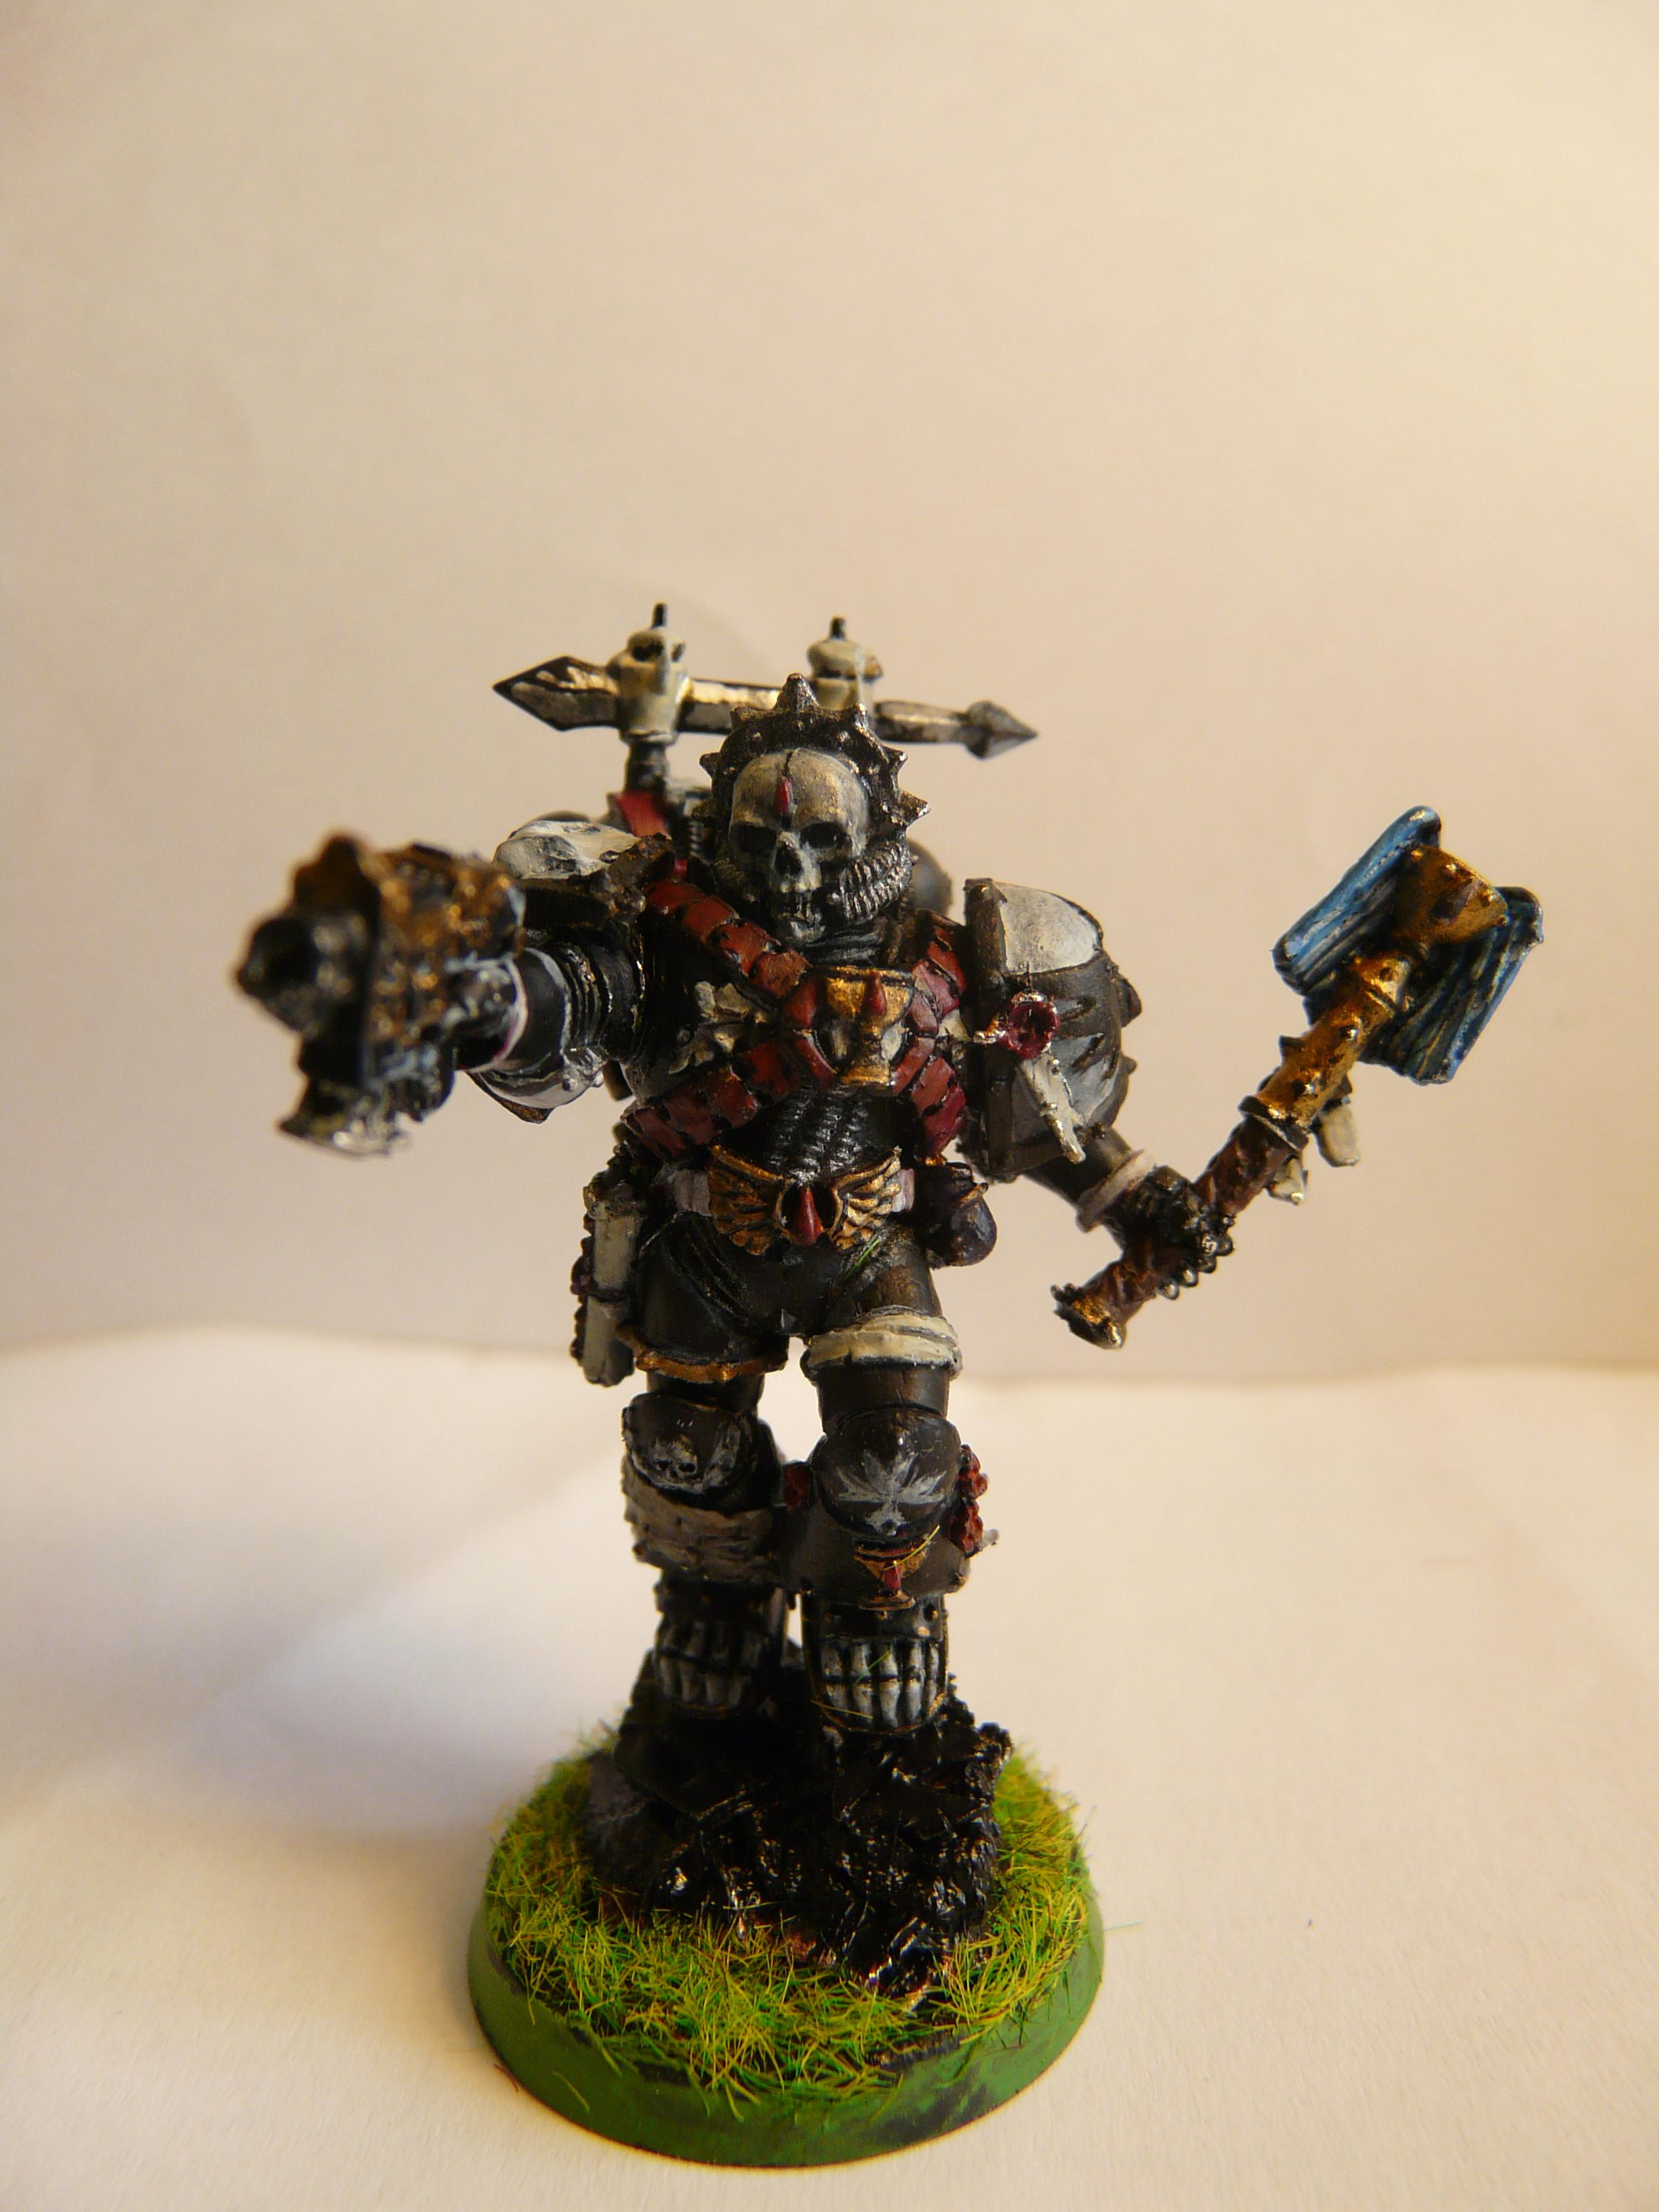 Chaplain, Lemartes with a different backpack